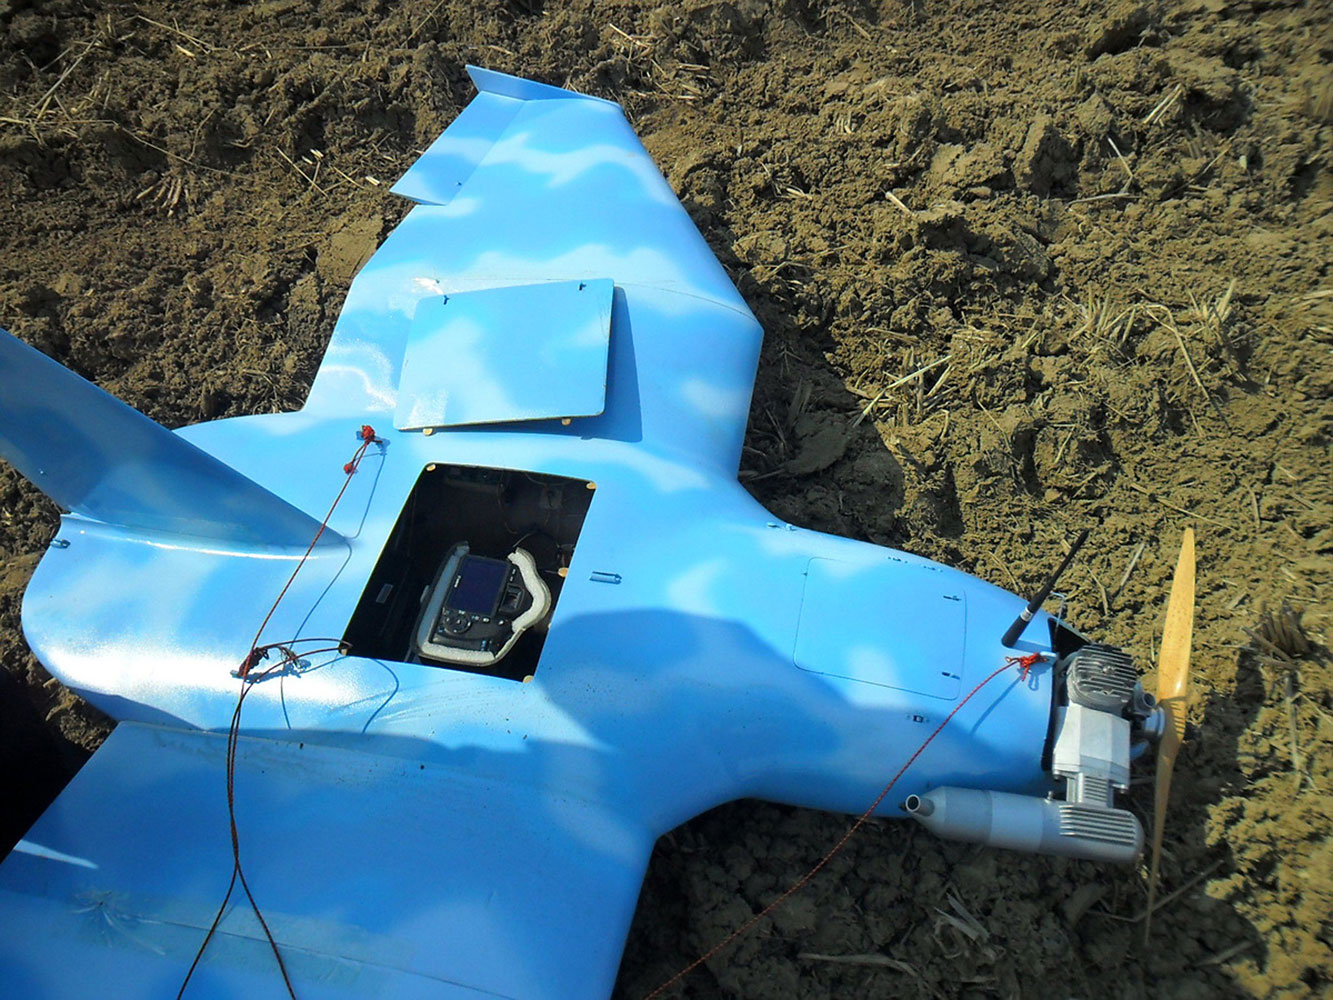 South Korea recovered the unidentified drone that crashed on one of its border islands on the same day that North and South Korea exchanged artillery fire across their disputed maritime boundary. Yonhap said the shape and size of the drone found on Baengnyeong island was similar to this one recovered on March 24 near the northern city of Paju, close to the land border with North Korea.